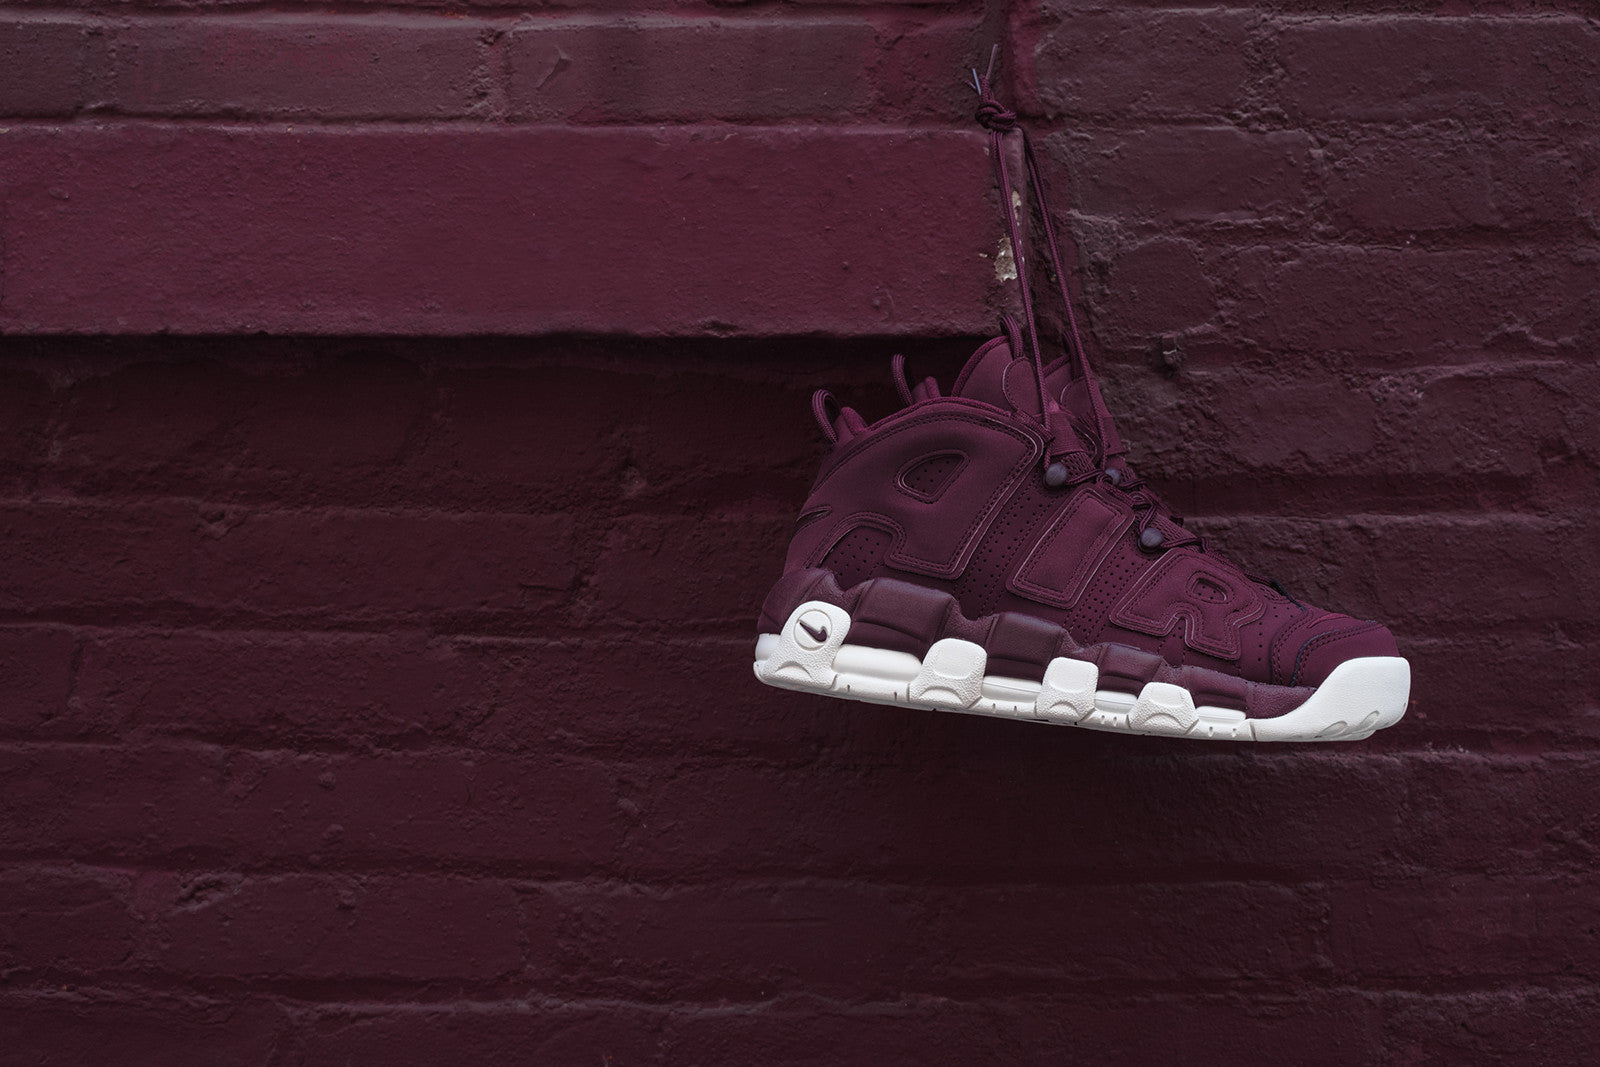 6a0c71cddc96b2 Nike Air More Uptempo  96 QS - Bordeaux. May 23